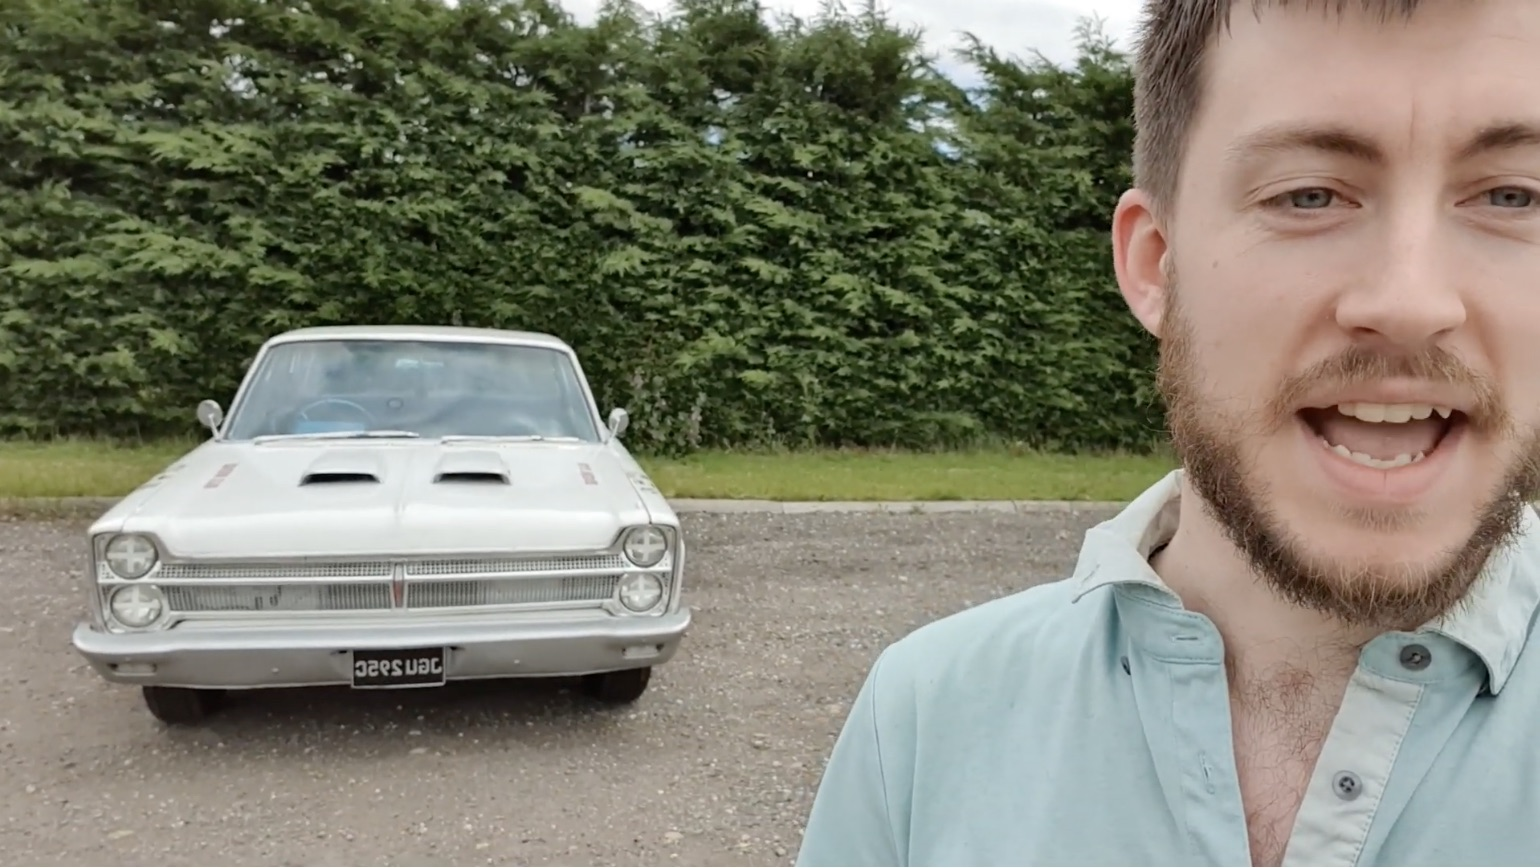 A Different View: This British Gaming YouTuber Bought Himself An Old Plymouth!